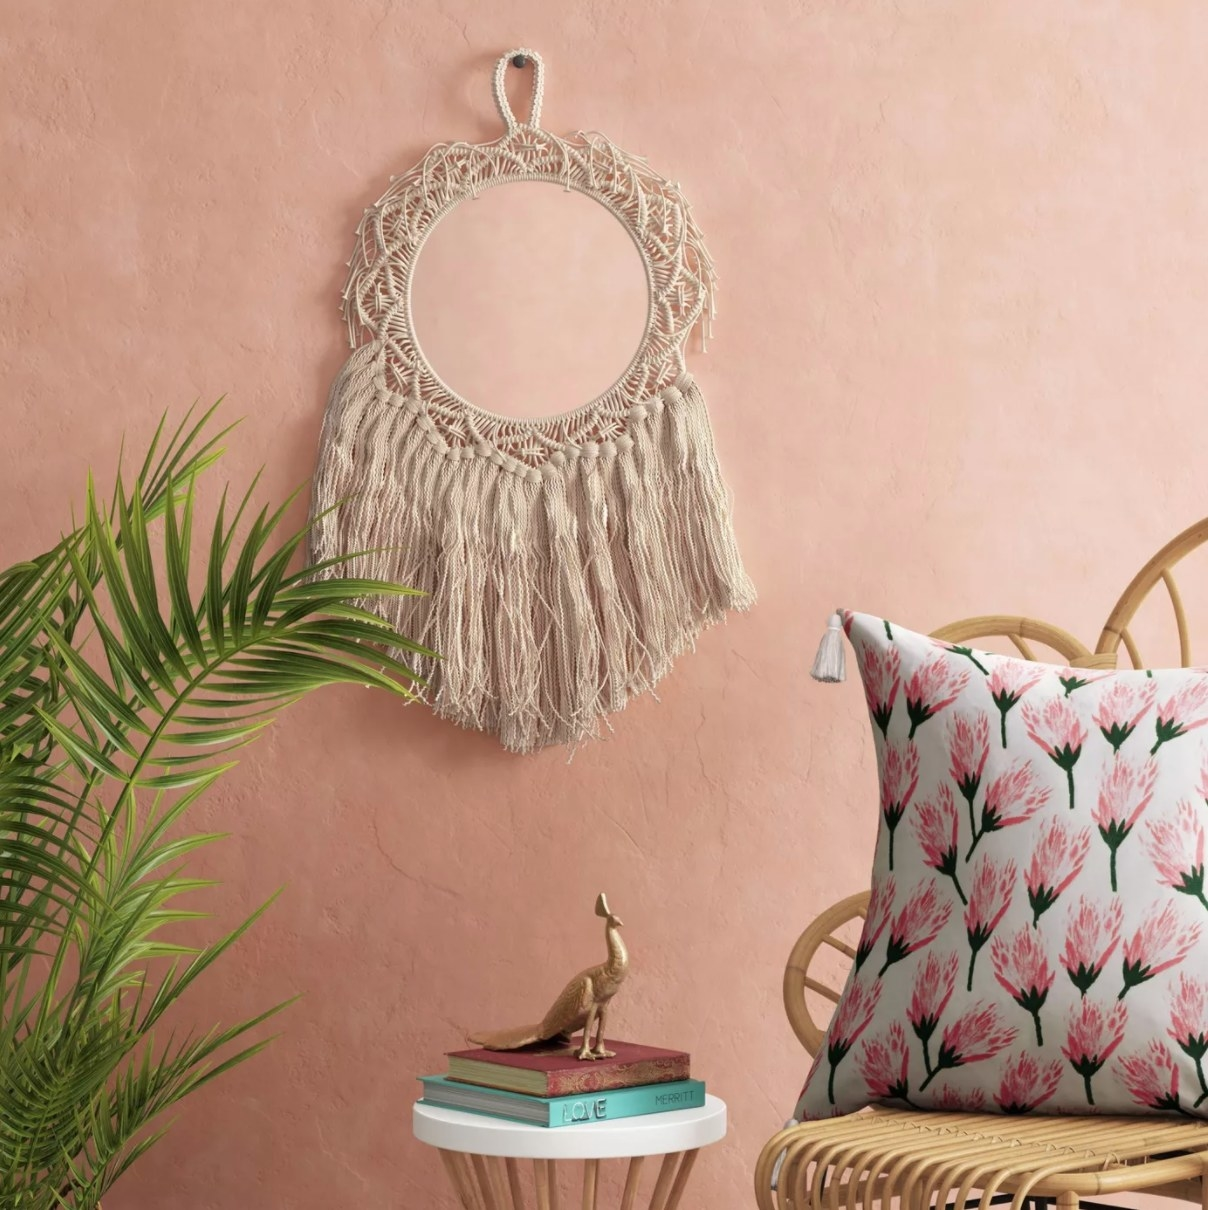 The round macrame woven wall art